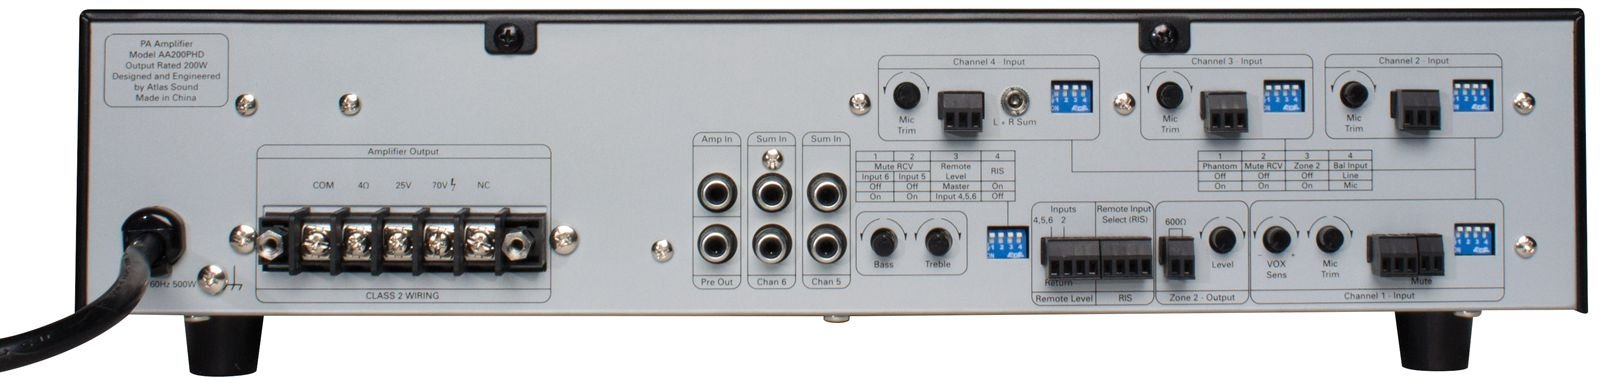 6-Input, 200W Mixer Amplifier with Automatic System Test (PHD)